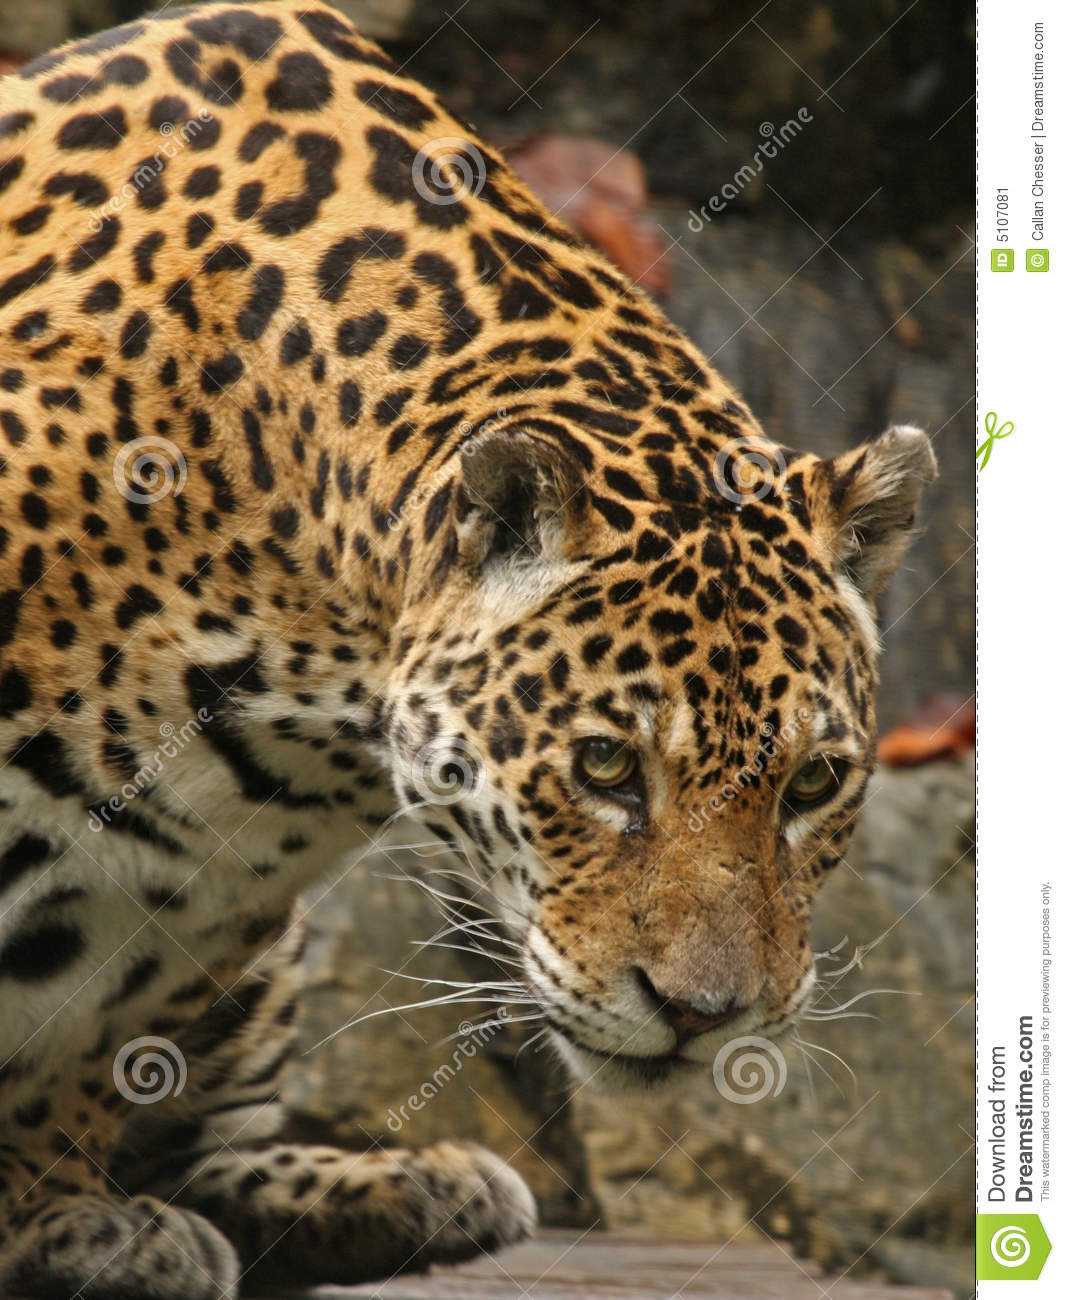 Male Jaguar: A Photo Of A Male Jaguar Stock Image. Image Of Hunting